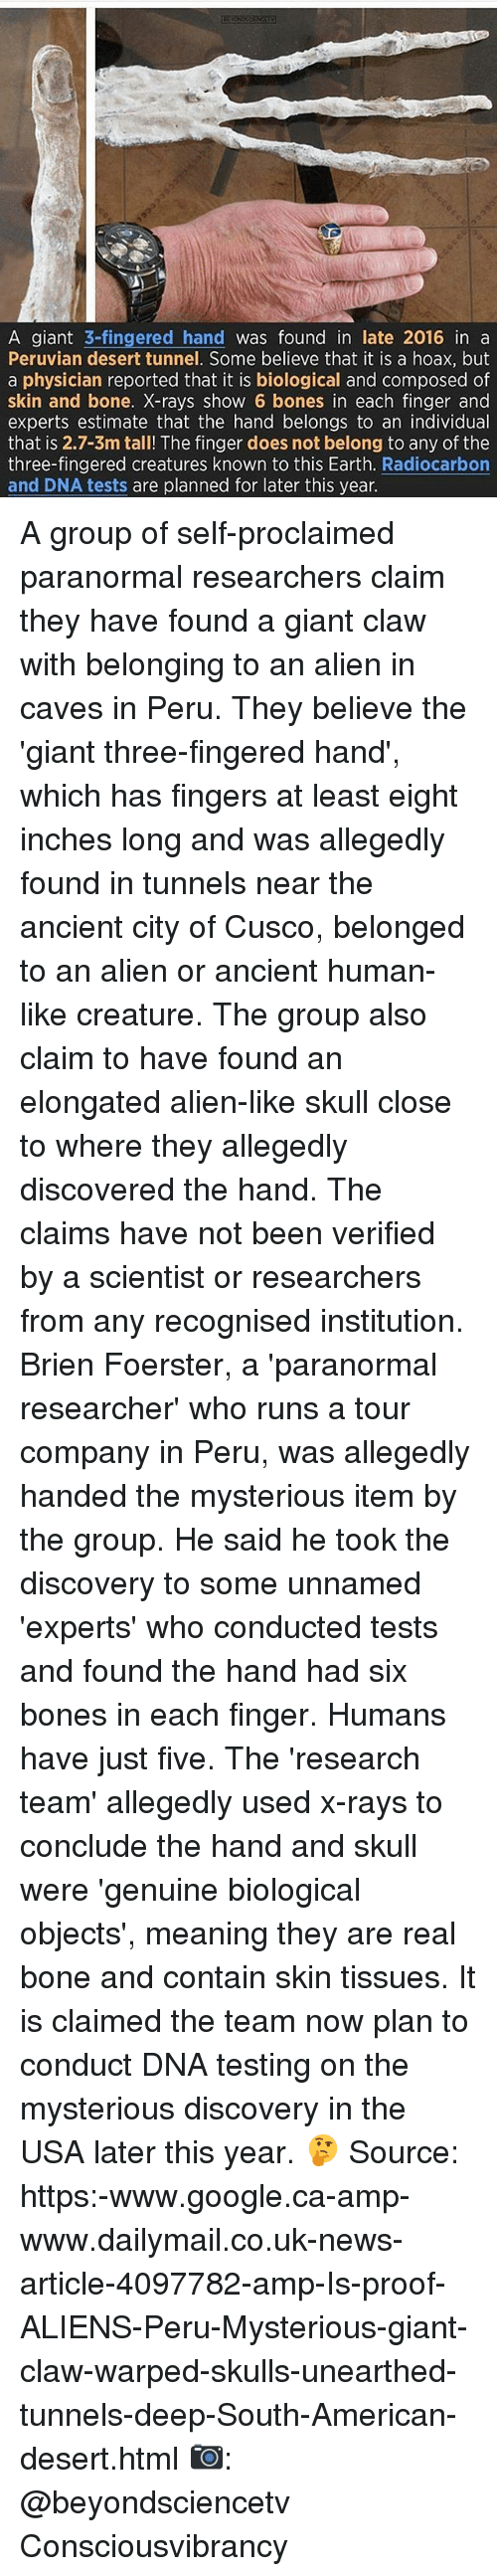 Bones, Google, and Memes: A giant  3-fingered hand  was found in late 2016 in a  Peruvian desert tunnel. Some believe that it is a hoax, but  a physician reported that it is biological and composed of  skin and bone. X-rays show 6 bones in each finger and  experts estimate that the hand belongs to an individual  that is 2.7-3m tall! The finger does not belong to any of the  three-fingered creatures known to this Earth  Radiocarbon  and DNA tests are planned for later this year. A group of self-proclaimed paranormal researchers claim they have found a giant claw with belonging to an alien in caves in Peru. They believe the 'giant three-fingered hand', which has fingers at least eight inches long and was allegedly found in tunnels near the ancient city of Cusco, belonged to an alien or ancient human-like creature. The group also claim to have found an elongated alien-like skull close to where they allegedly discovered the hand. The claims have not been verified by a scientist or researchers from any recognised institution. Brien Foerster, a 'paranormal researcher' who runs a tour company in Peru, was allegedly handed the mysterious item by the group. He said he took the discovery to some unnamed 'experts' who conducted tests and found the hand had six bones in each finger. Humans have just five. The 'research team' allegedly used x-rays to conclude the hand and skull were 'genuine biological objects', meaning they are real bone and contain skin tissues. It is claimed the team now plan to conduct DNA testing on the mysterious discovery in the USA later this year. 🤔 Source: https:-www.google.ca-amp-www.dailymail.co.uk-news-article-4097782-amp-Is-proof-ALIENS-Peru-Mysterious-giant-claw-warped-skulls-unearthed-tunnels-deep-South-American-desert.html 📷: @beyondsciencetv Consciousvibrancy